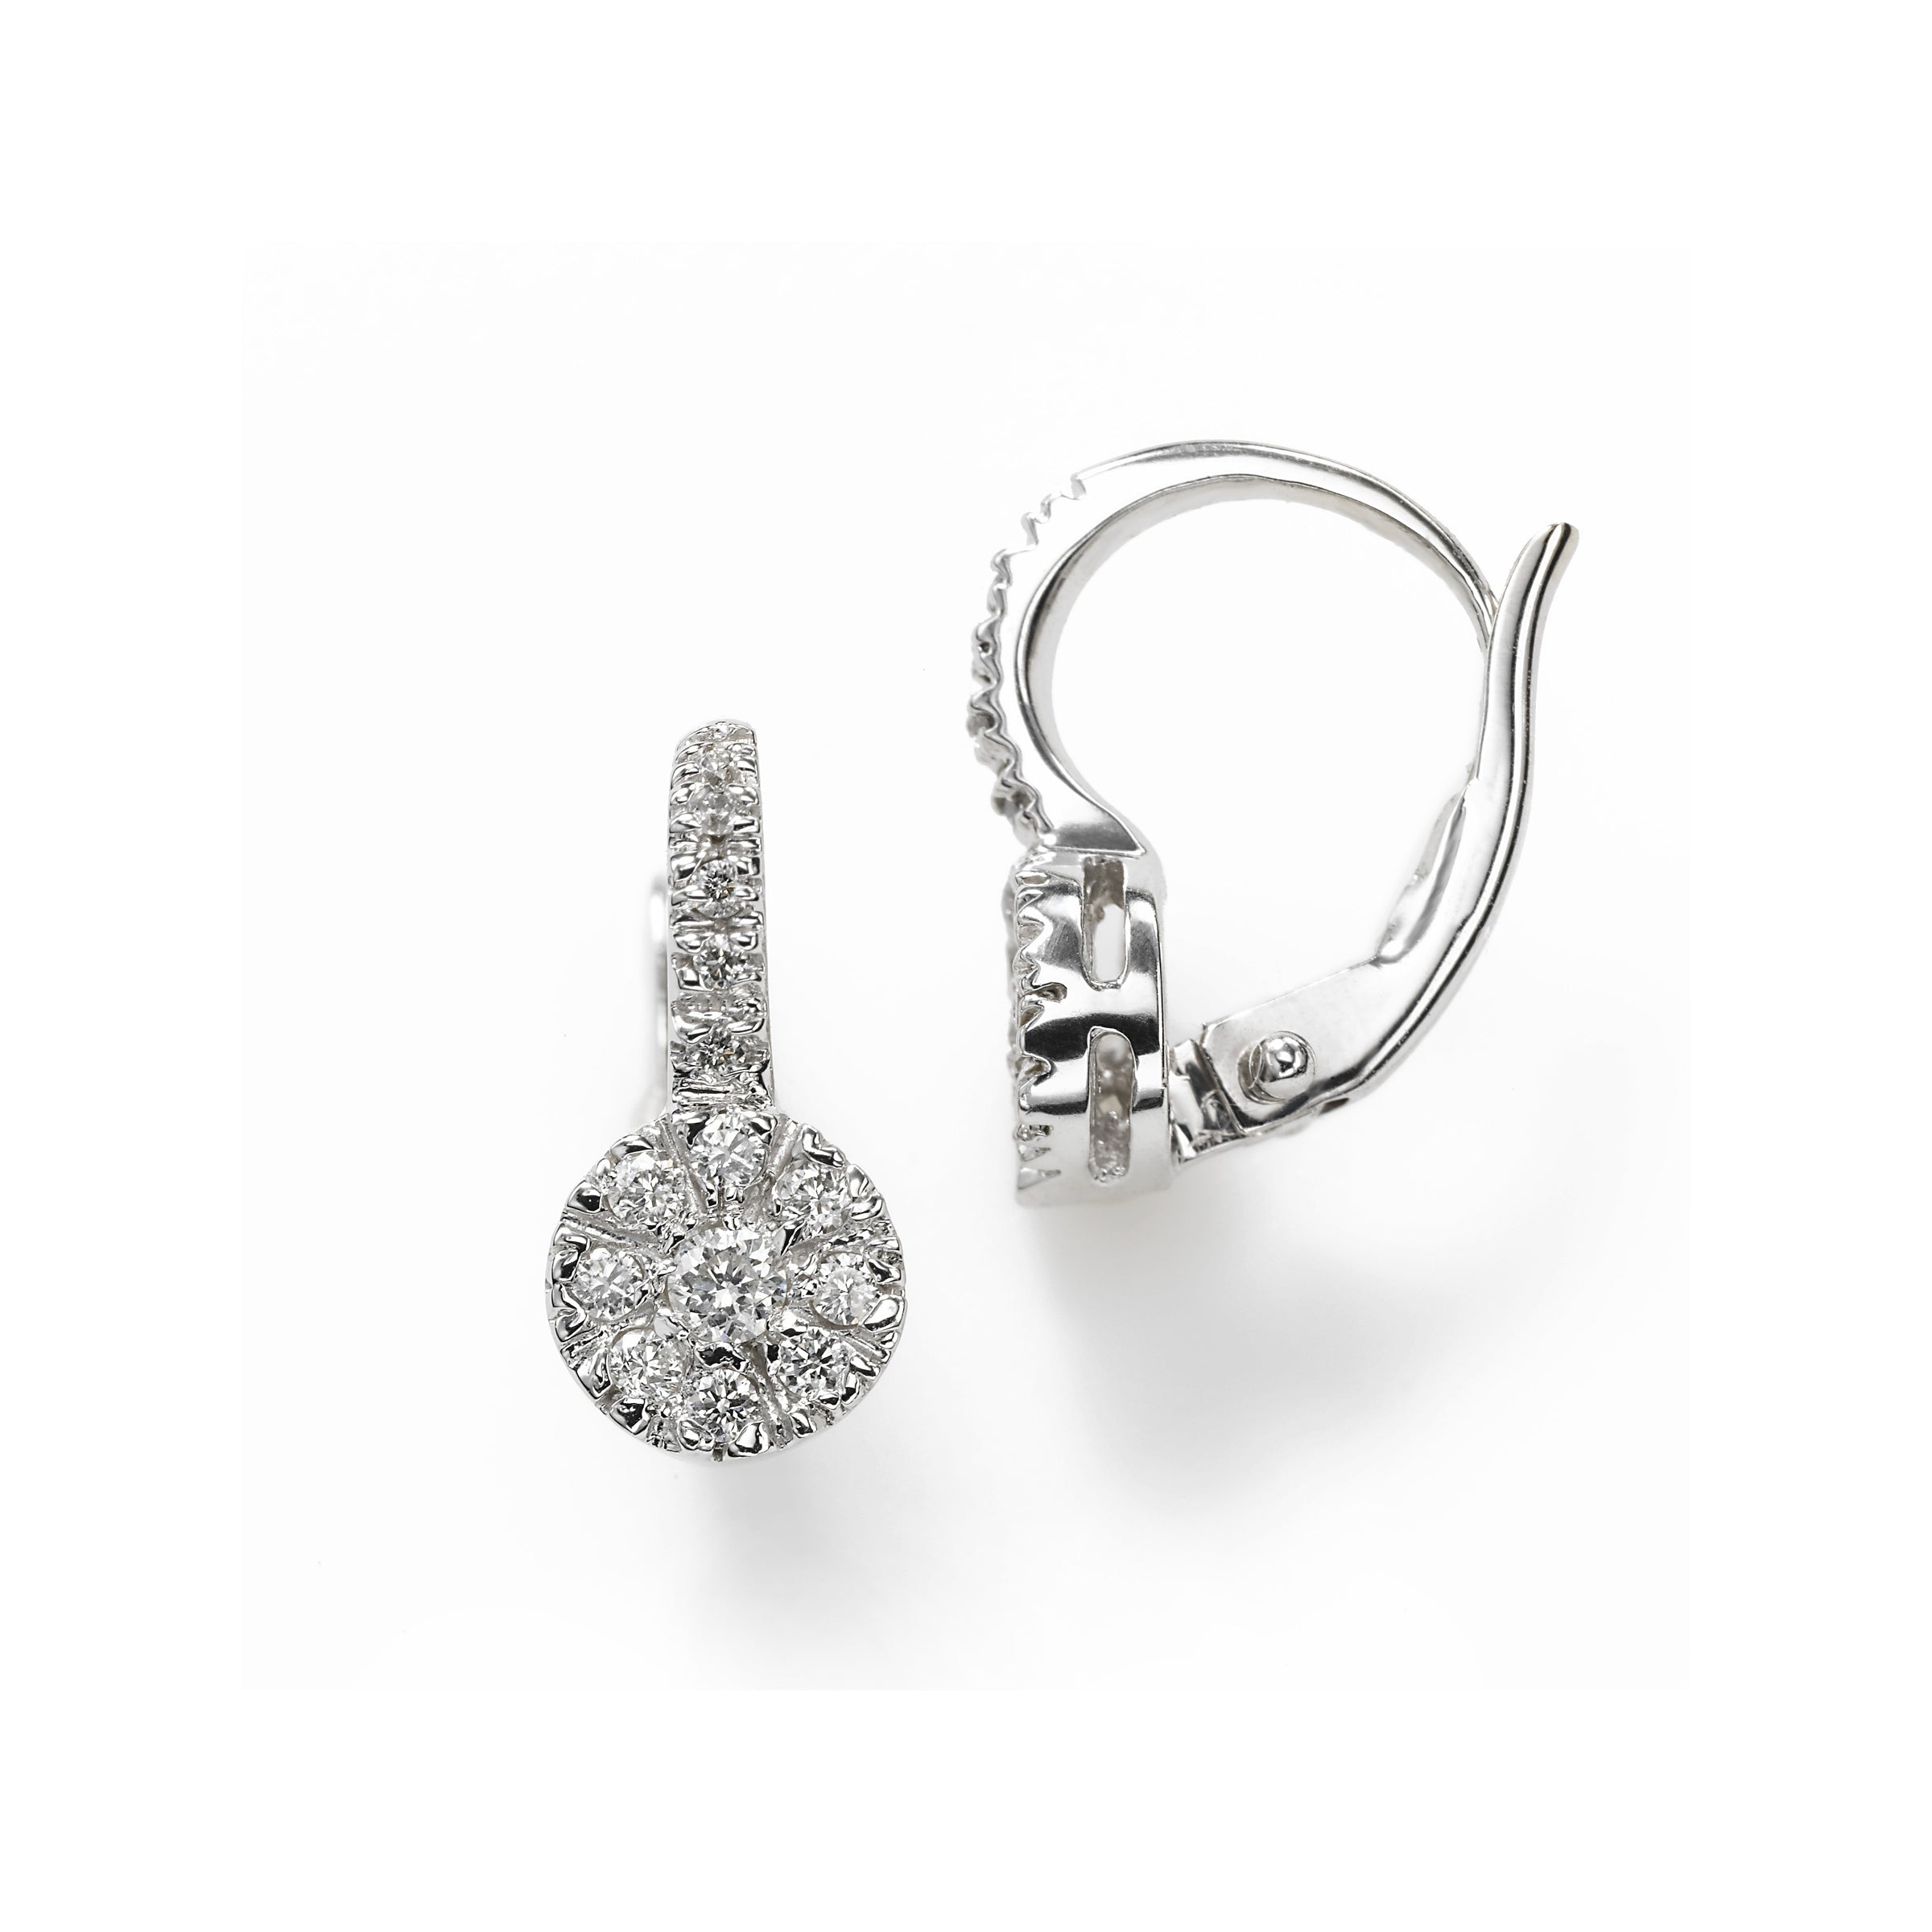 Diamond Cluster on Euro Wire Earring, .30 Carat, 14KWG